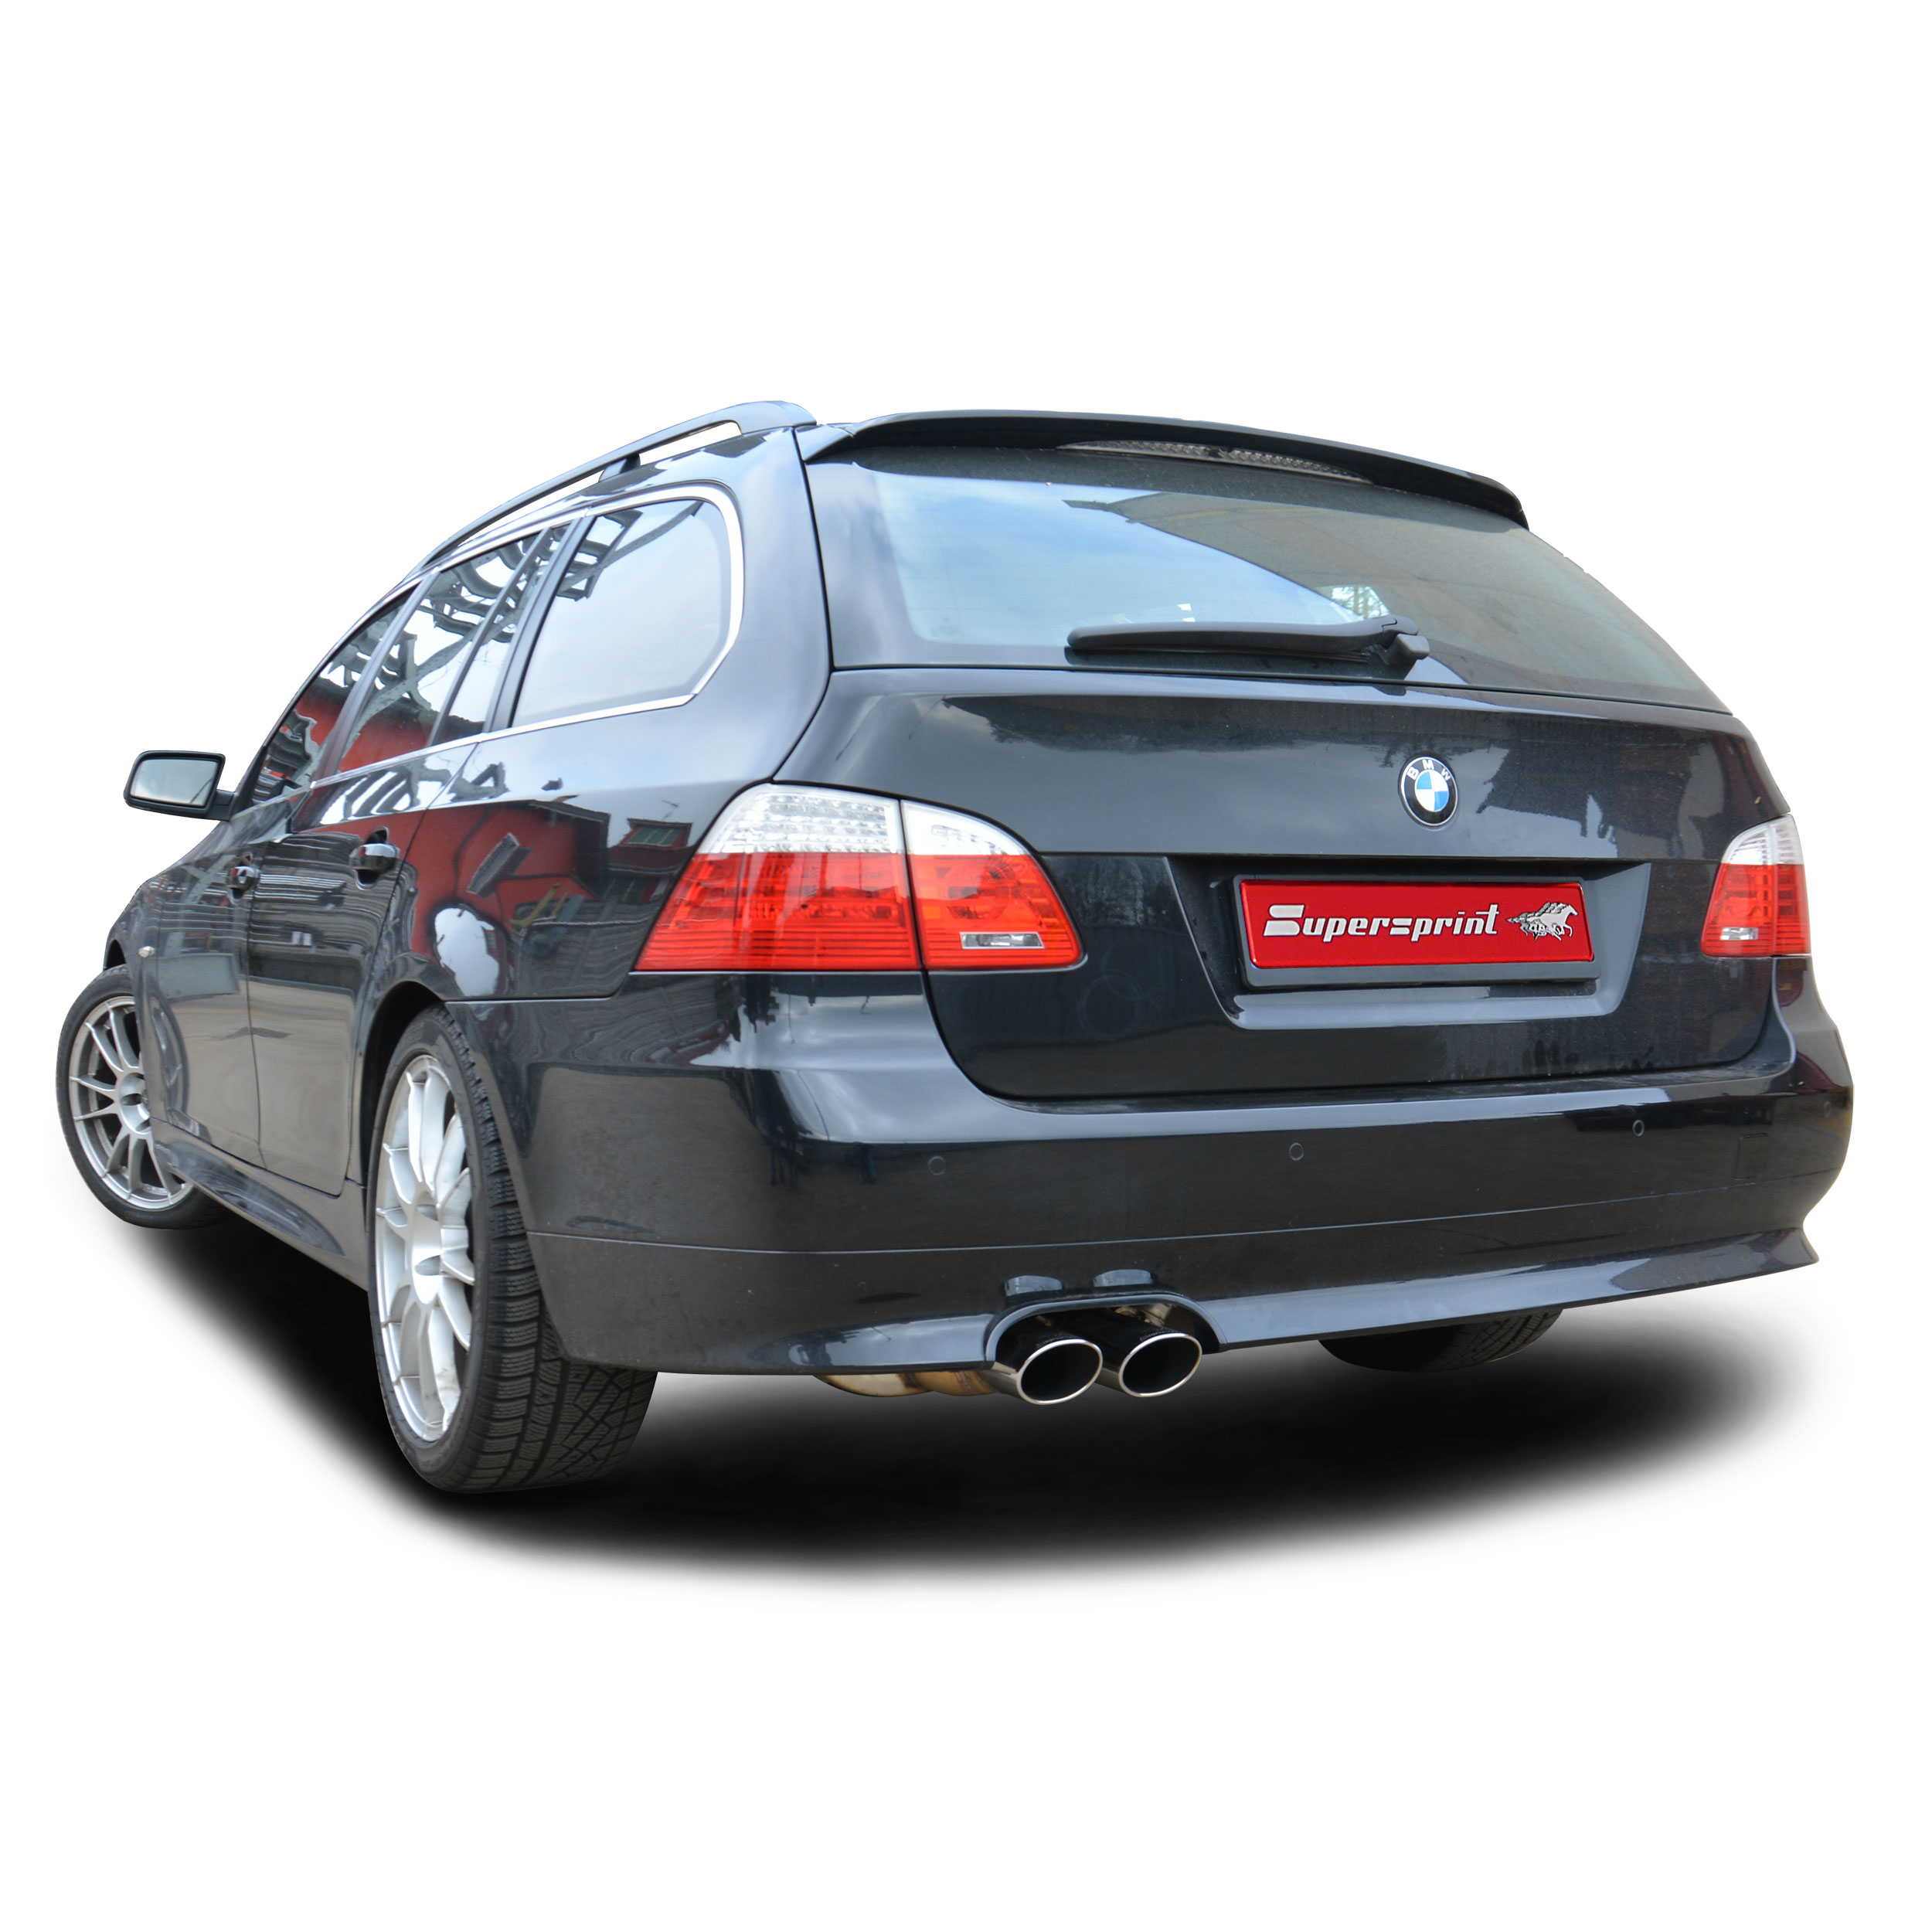 Alpina BMW - ALPINA B5 S (E60 - E61)(Berlina - Touring) 4.4i V8 (530 Hp) 2007 -> 2010